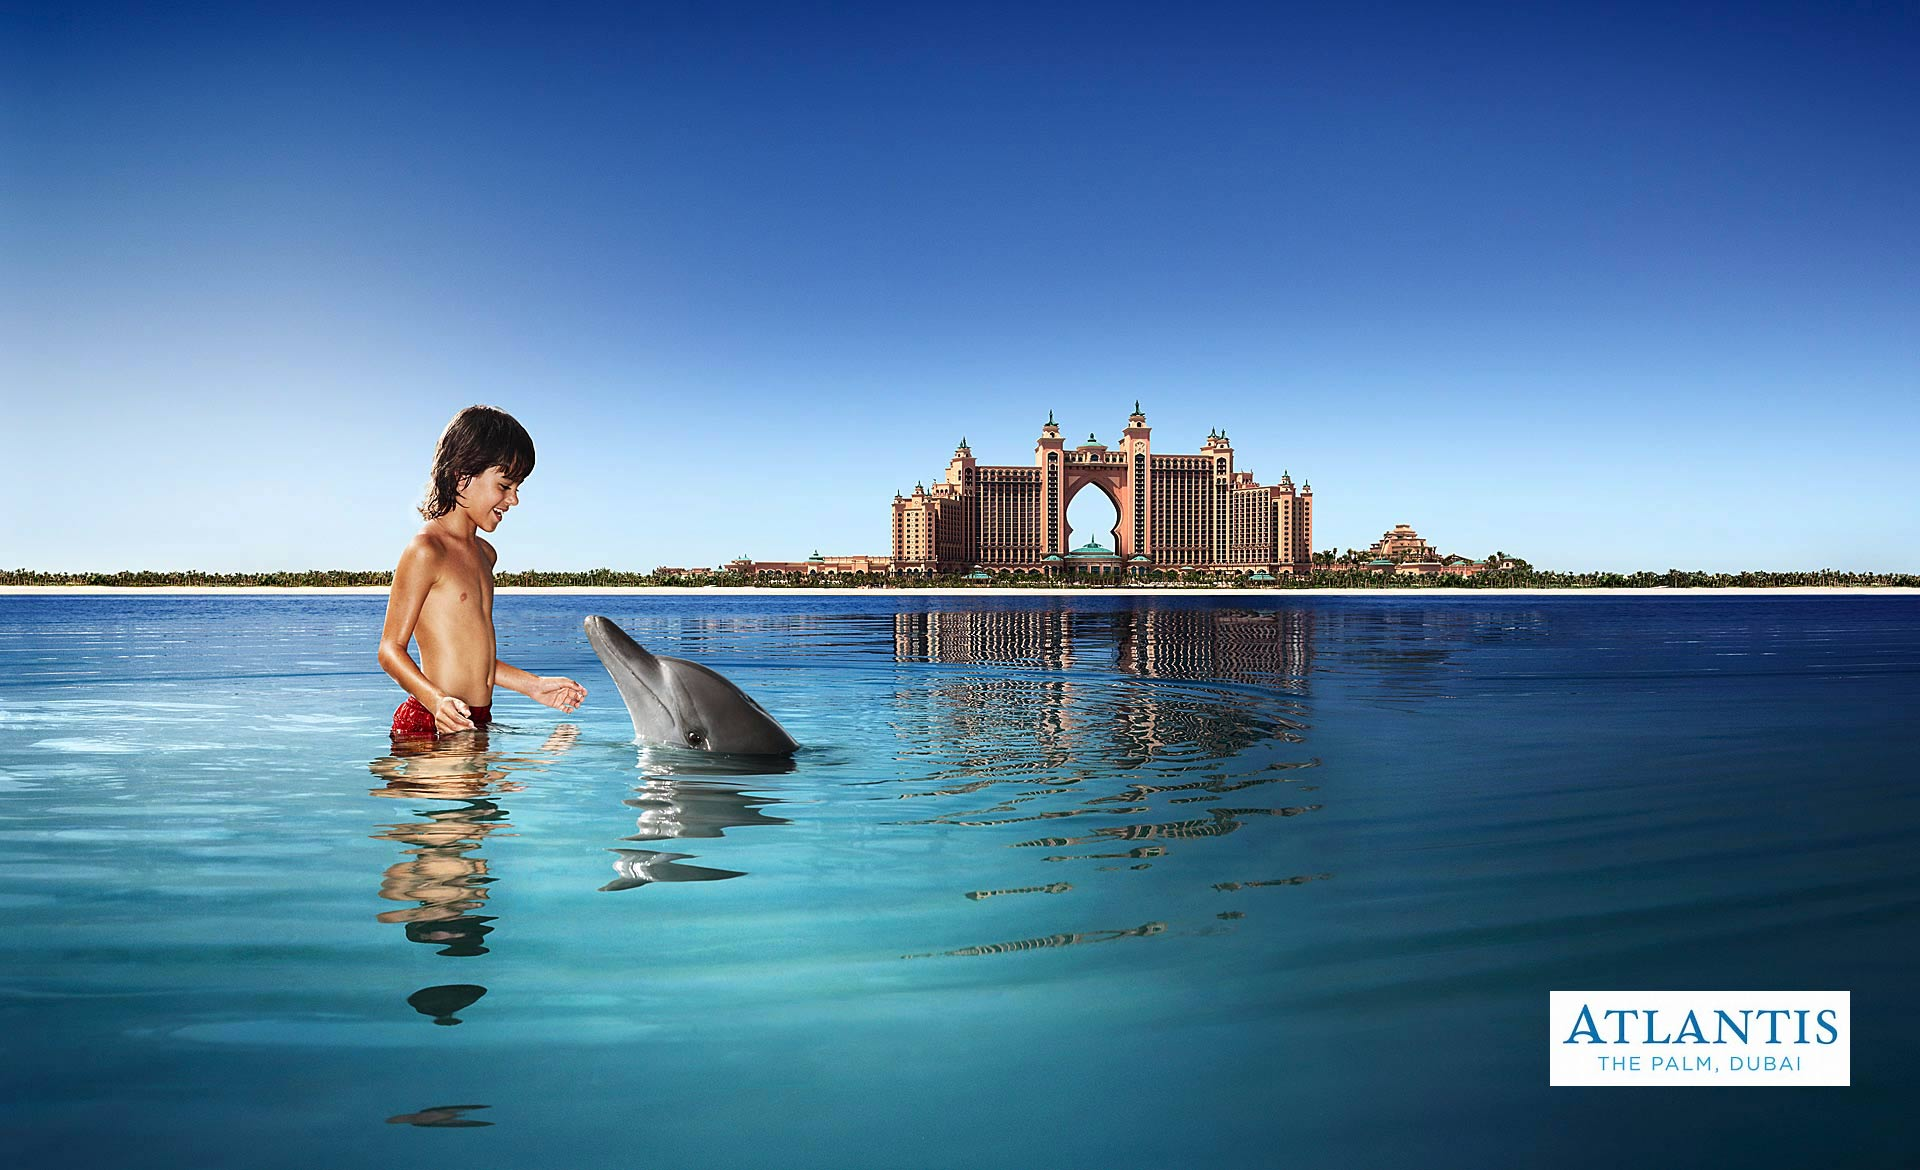 Atlantis Hotel and resorts